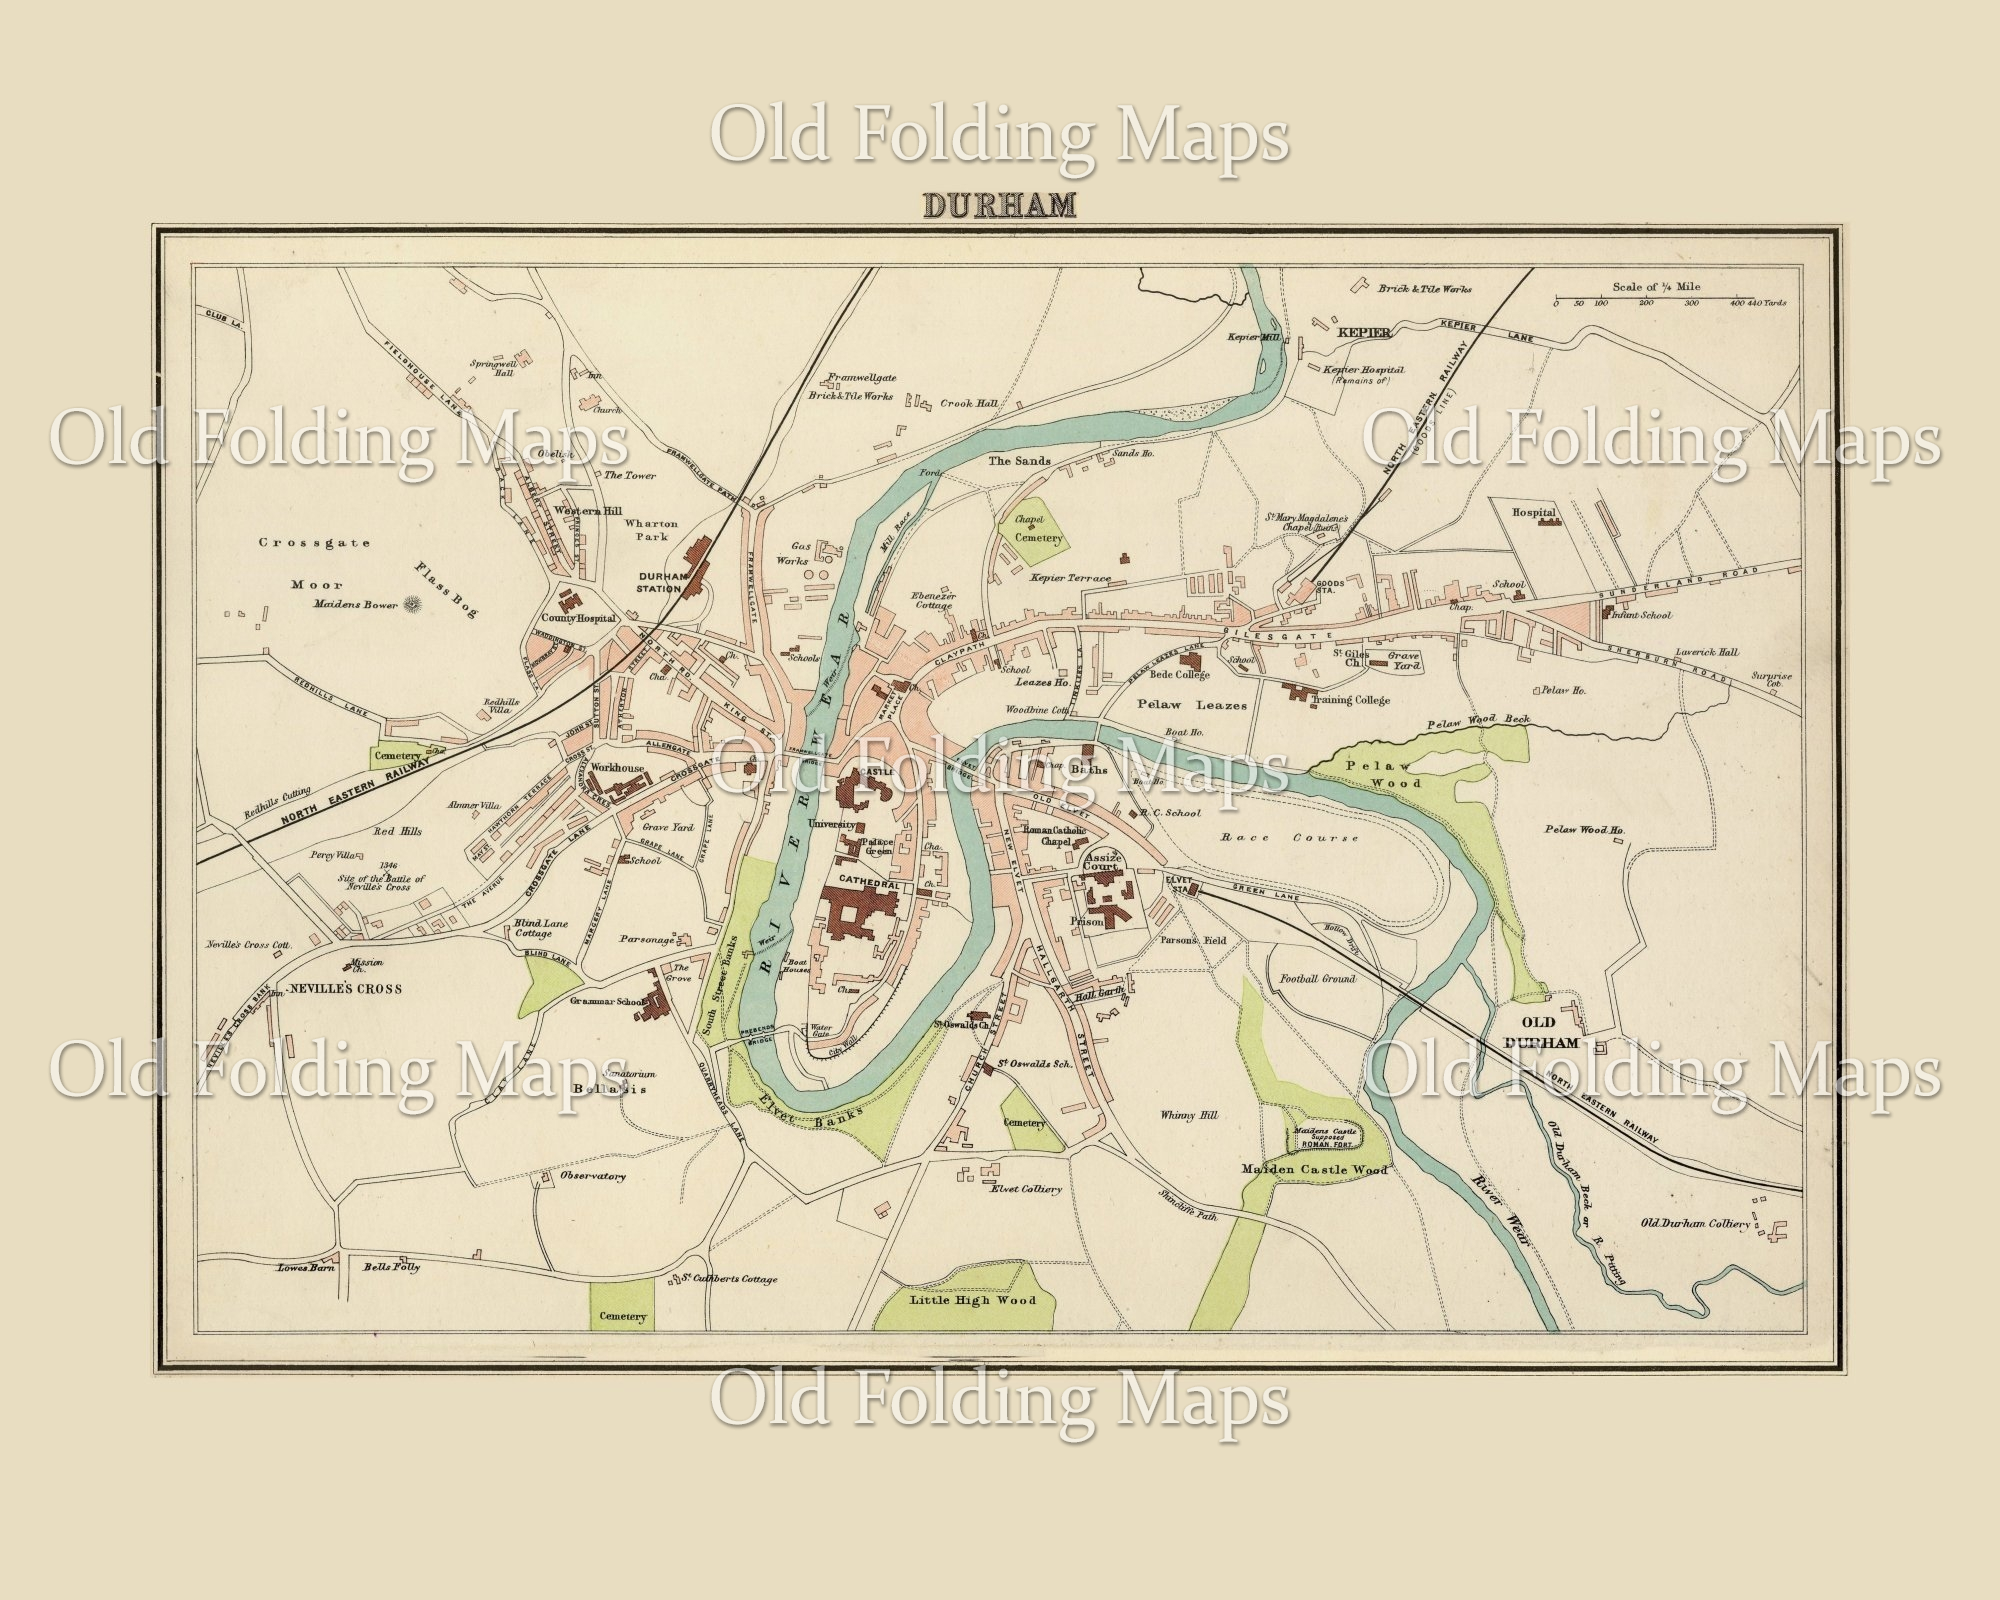 Old Map of Durham, England circa 1895